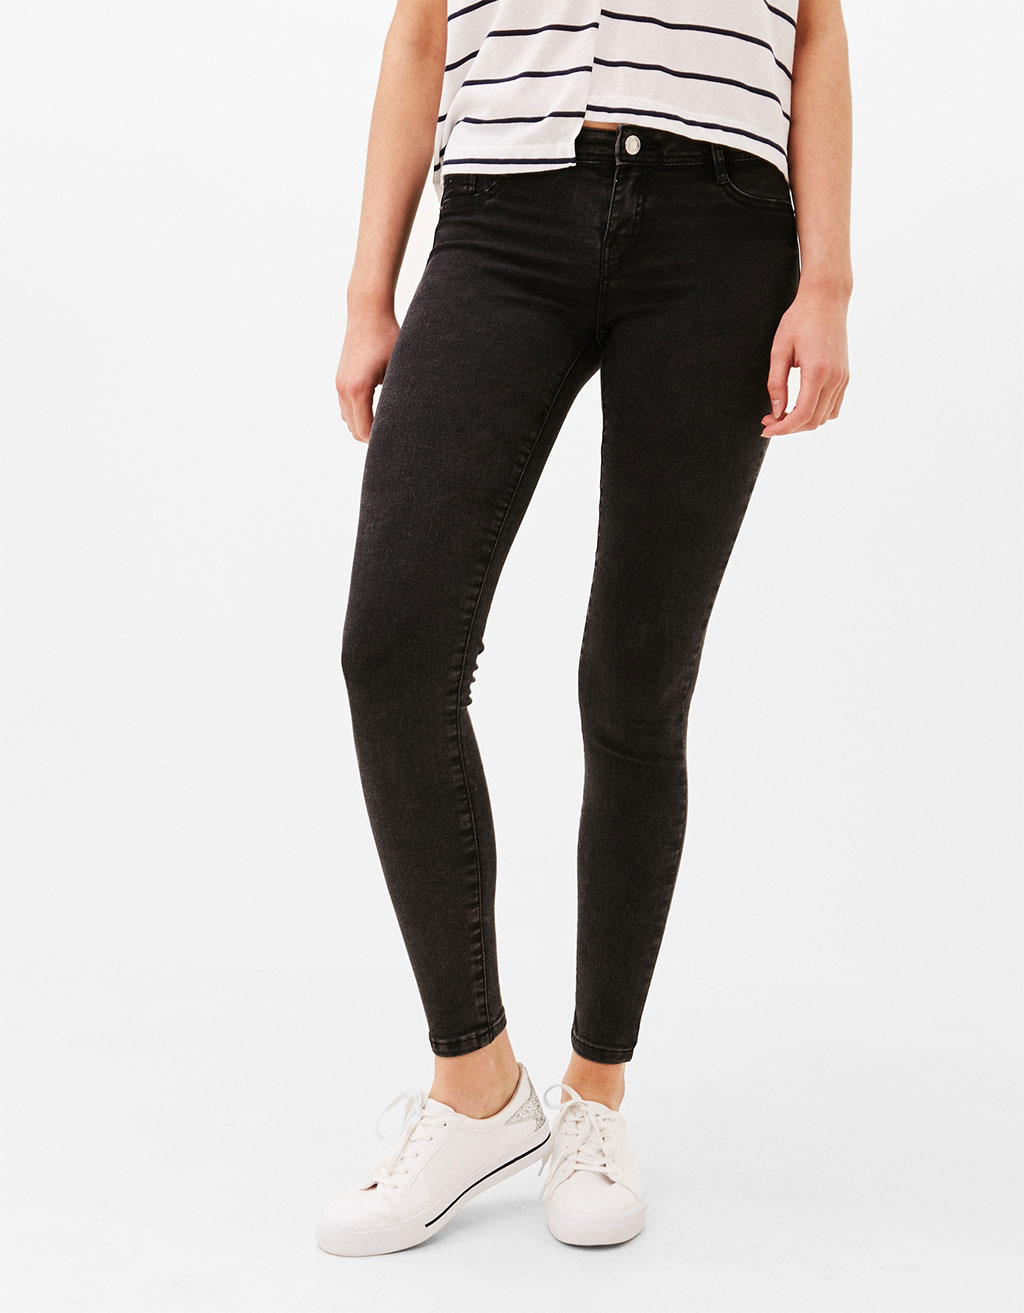 Jegging low rise high elasticity